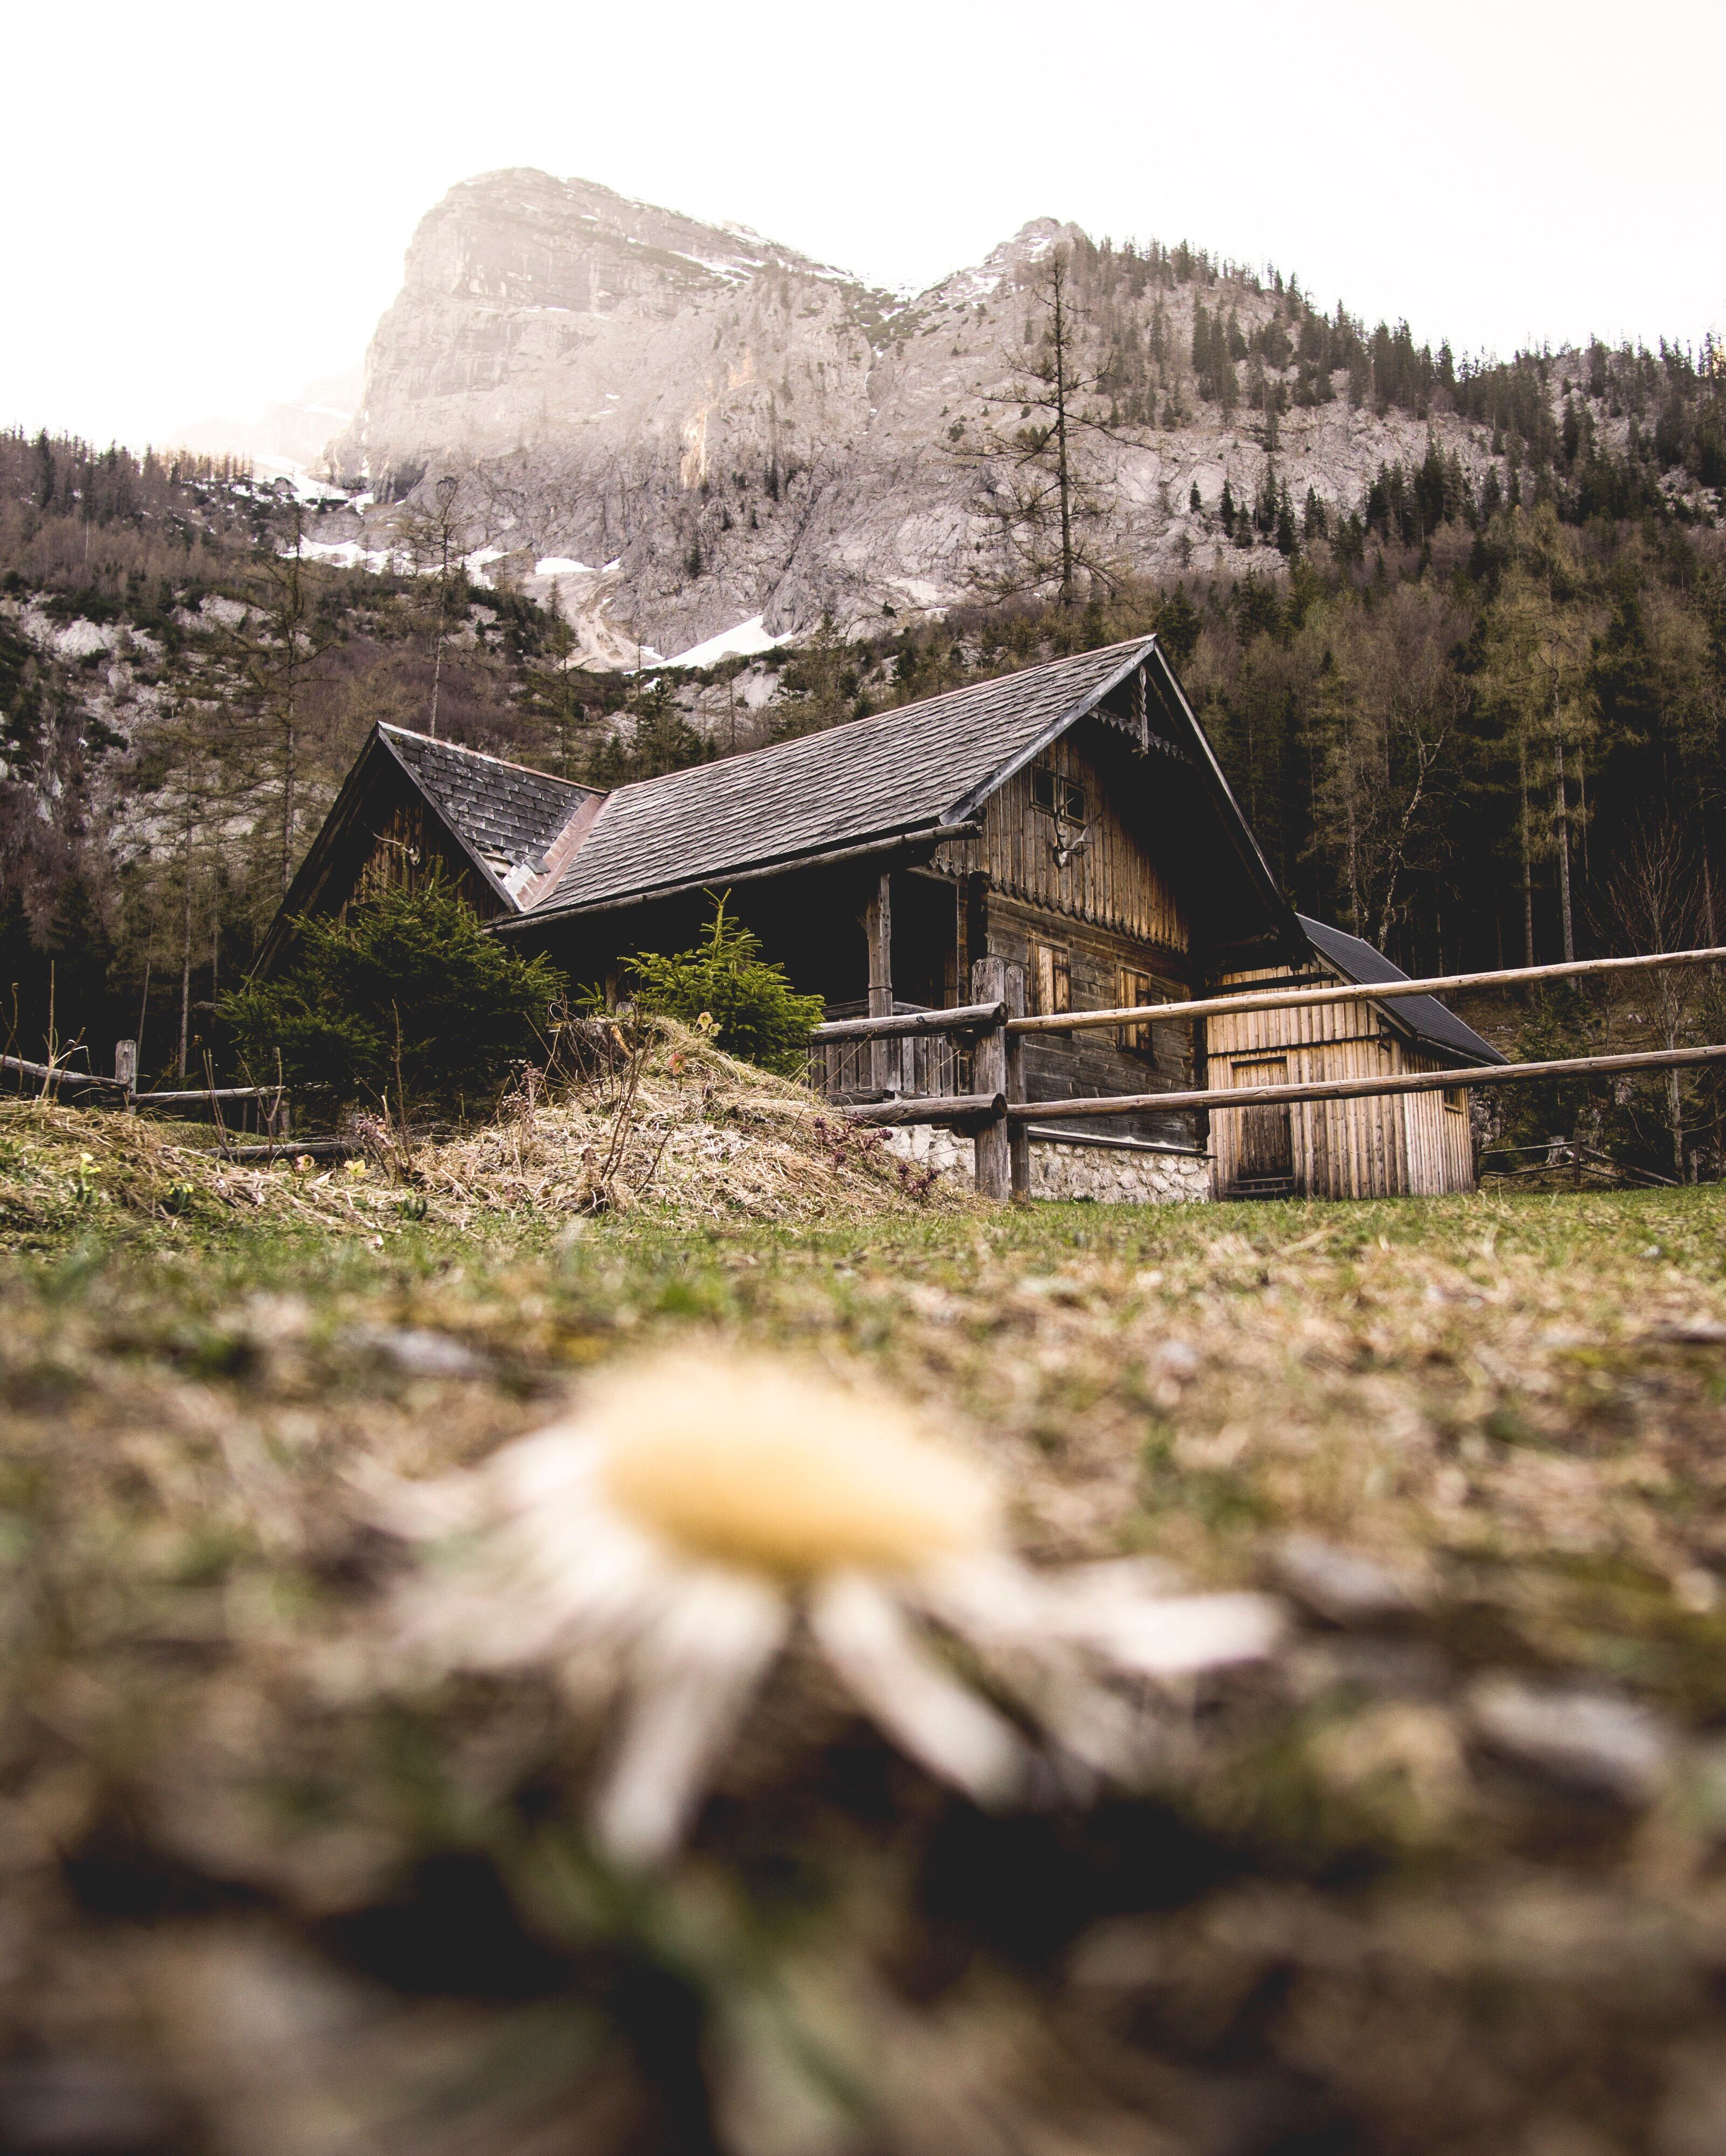 built structure, architecture, no people, wood - material, outdoors, building exterior, sky, day, mountain, grass, nature